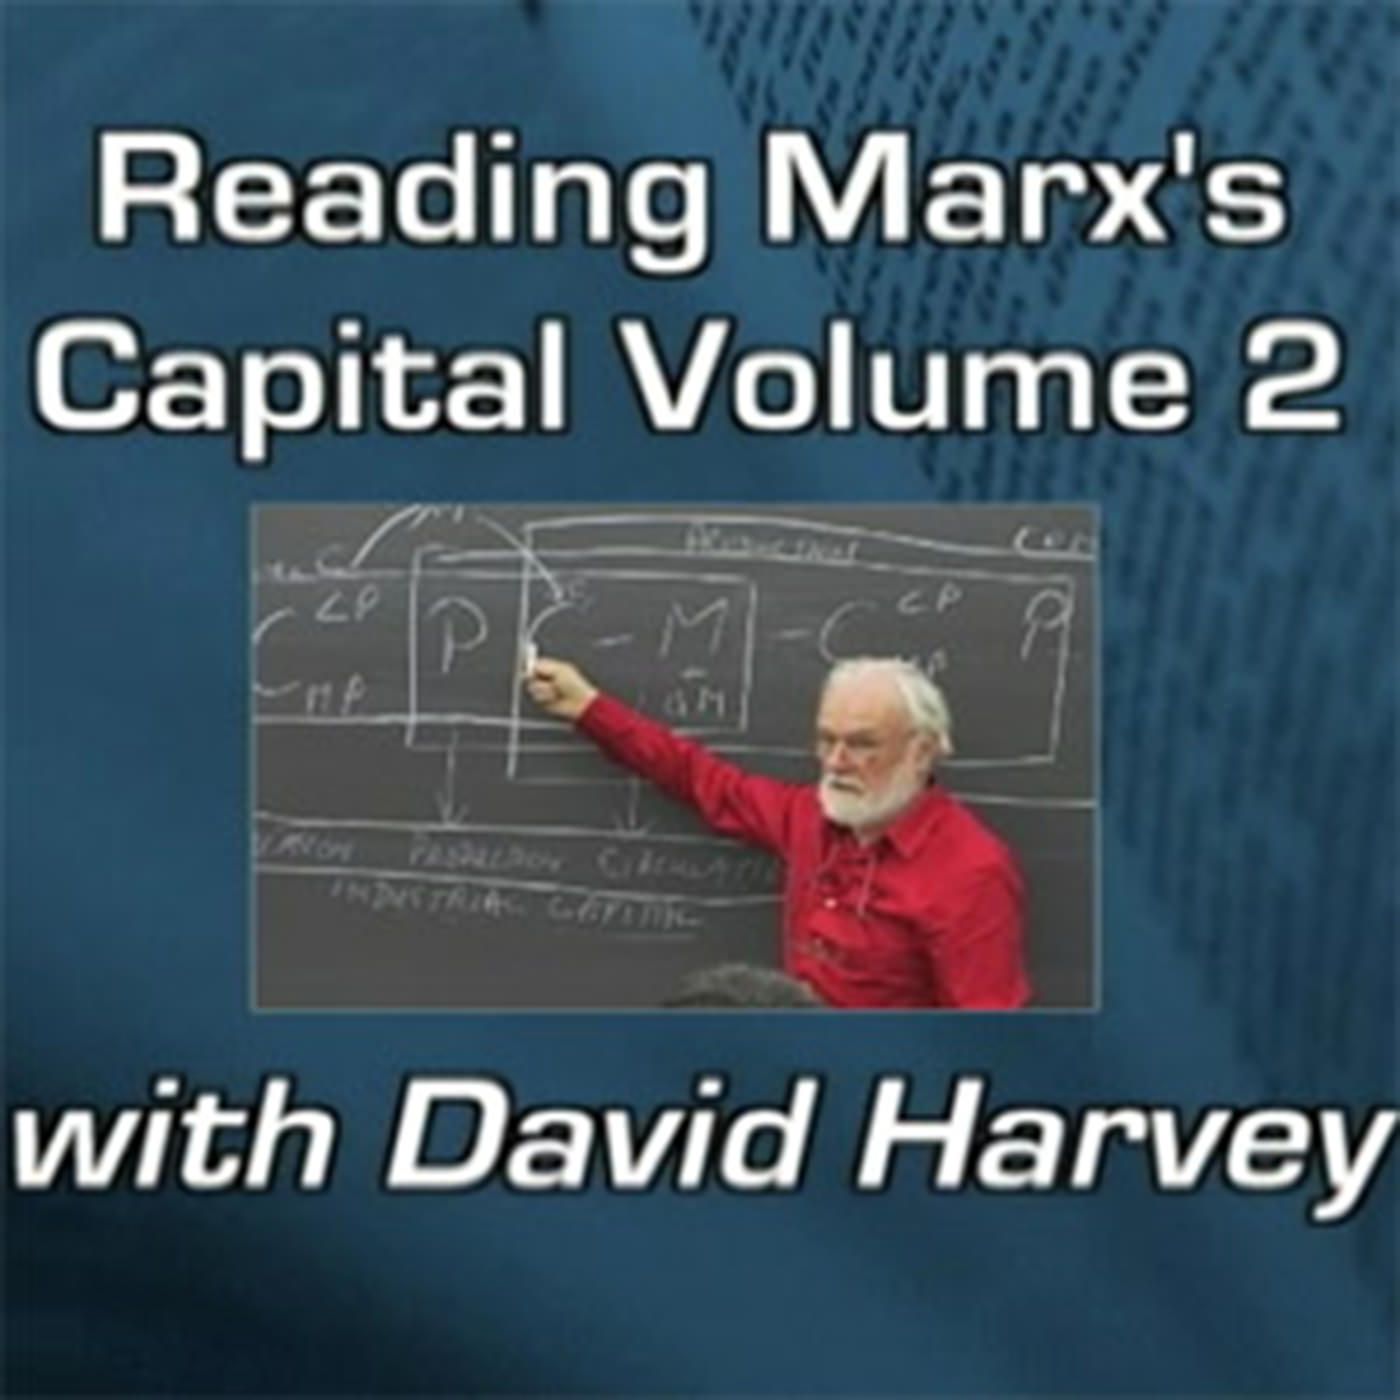 Reading Marx's Capital Volume 2 (video)